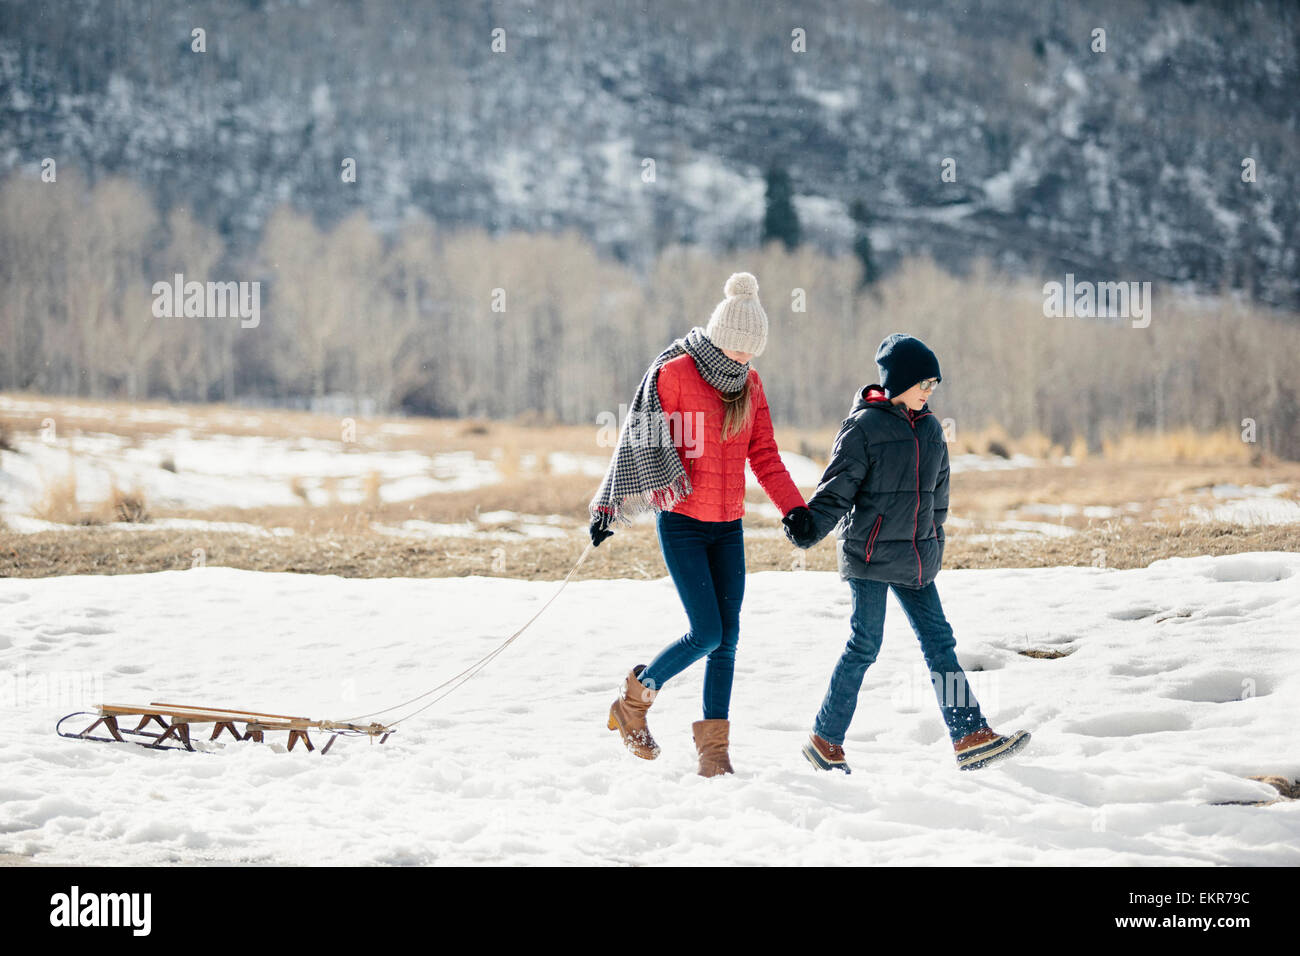 A brother and sister in the snow, one pulling a sledge. Stock Photo